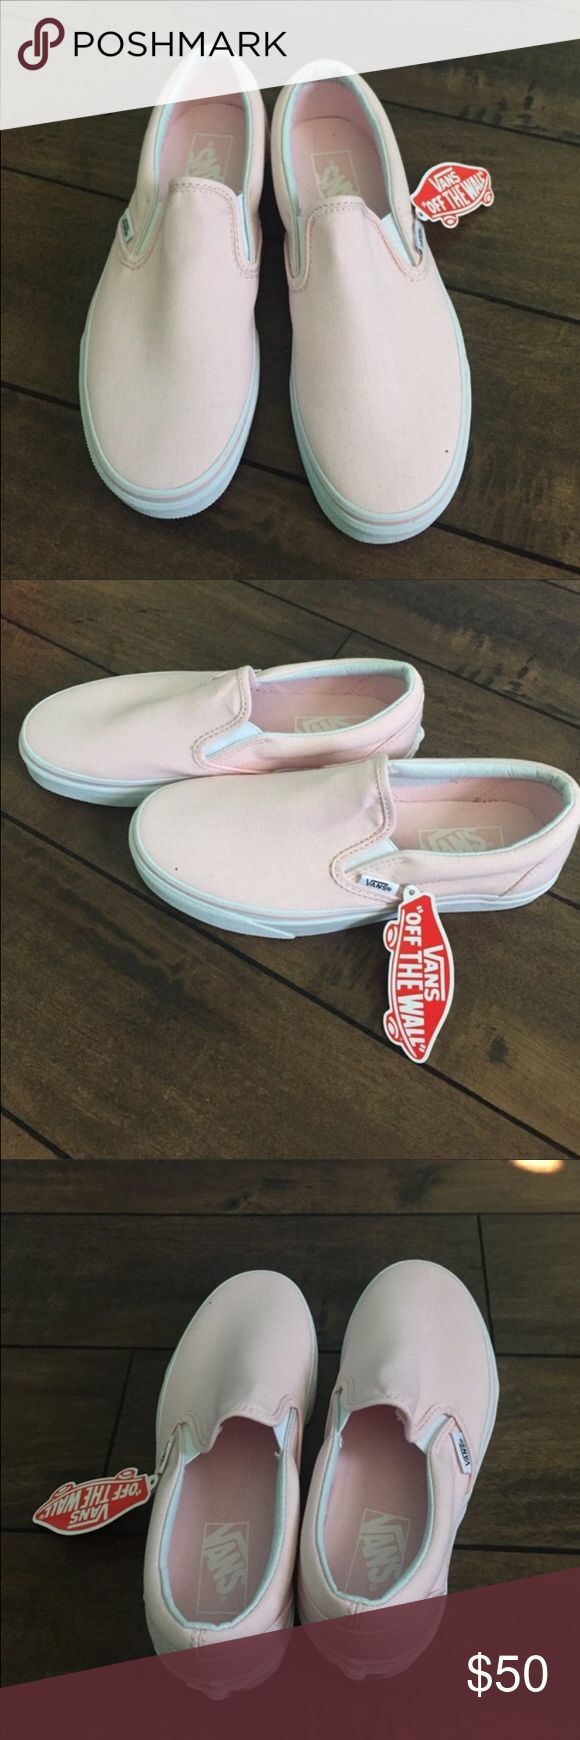 BRAND NEW PINK VANS Brand new with tags. Women's light pink slip on vans. Vans Shoes